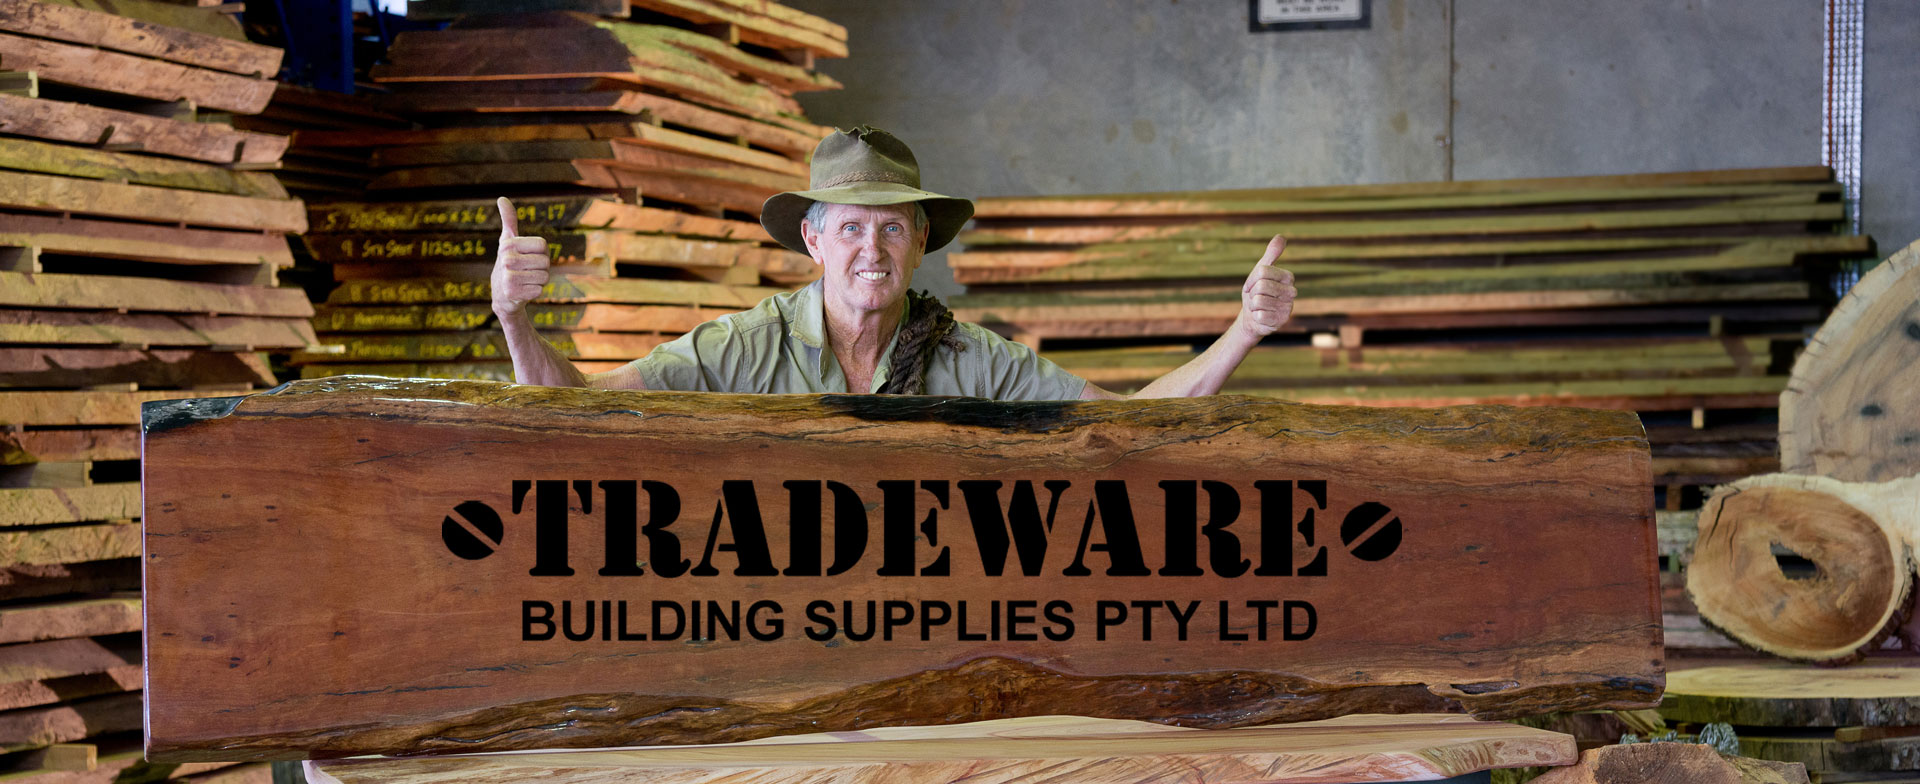 Home - image Tradeware-Building-Supplies_Chandler-Brisbane on http://tradewarebuildingsupplies.com